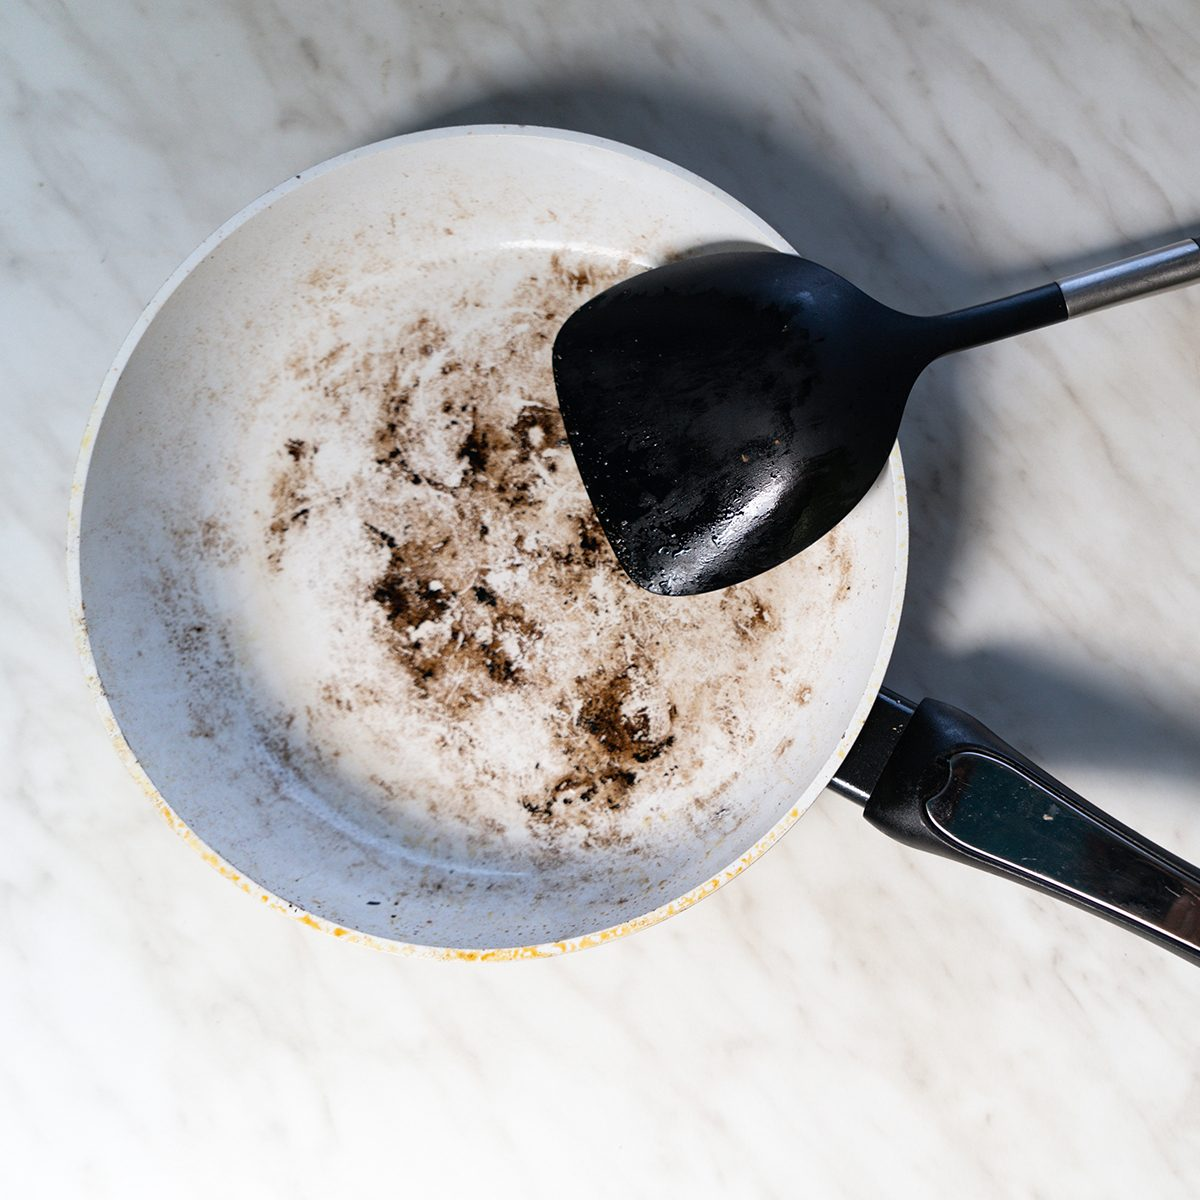 15 Things in Your Kitchen You Should Get Rid of by Age 30